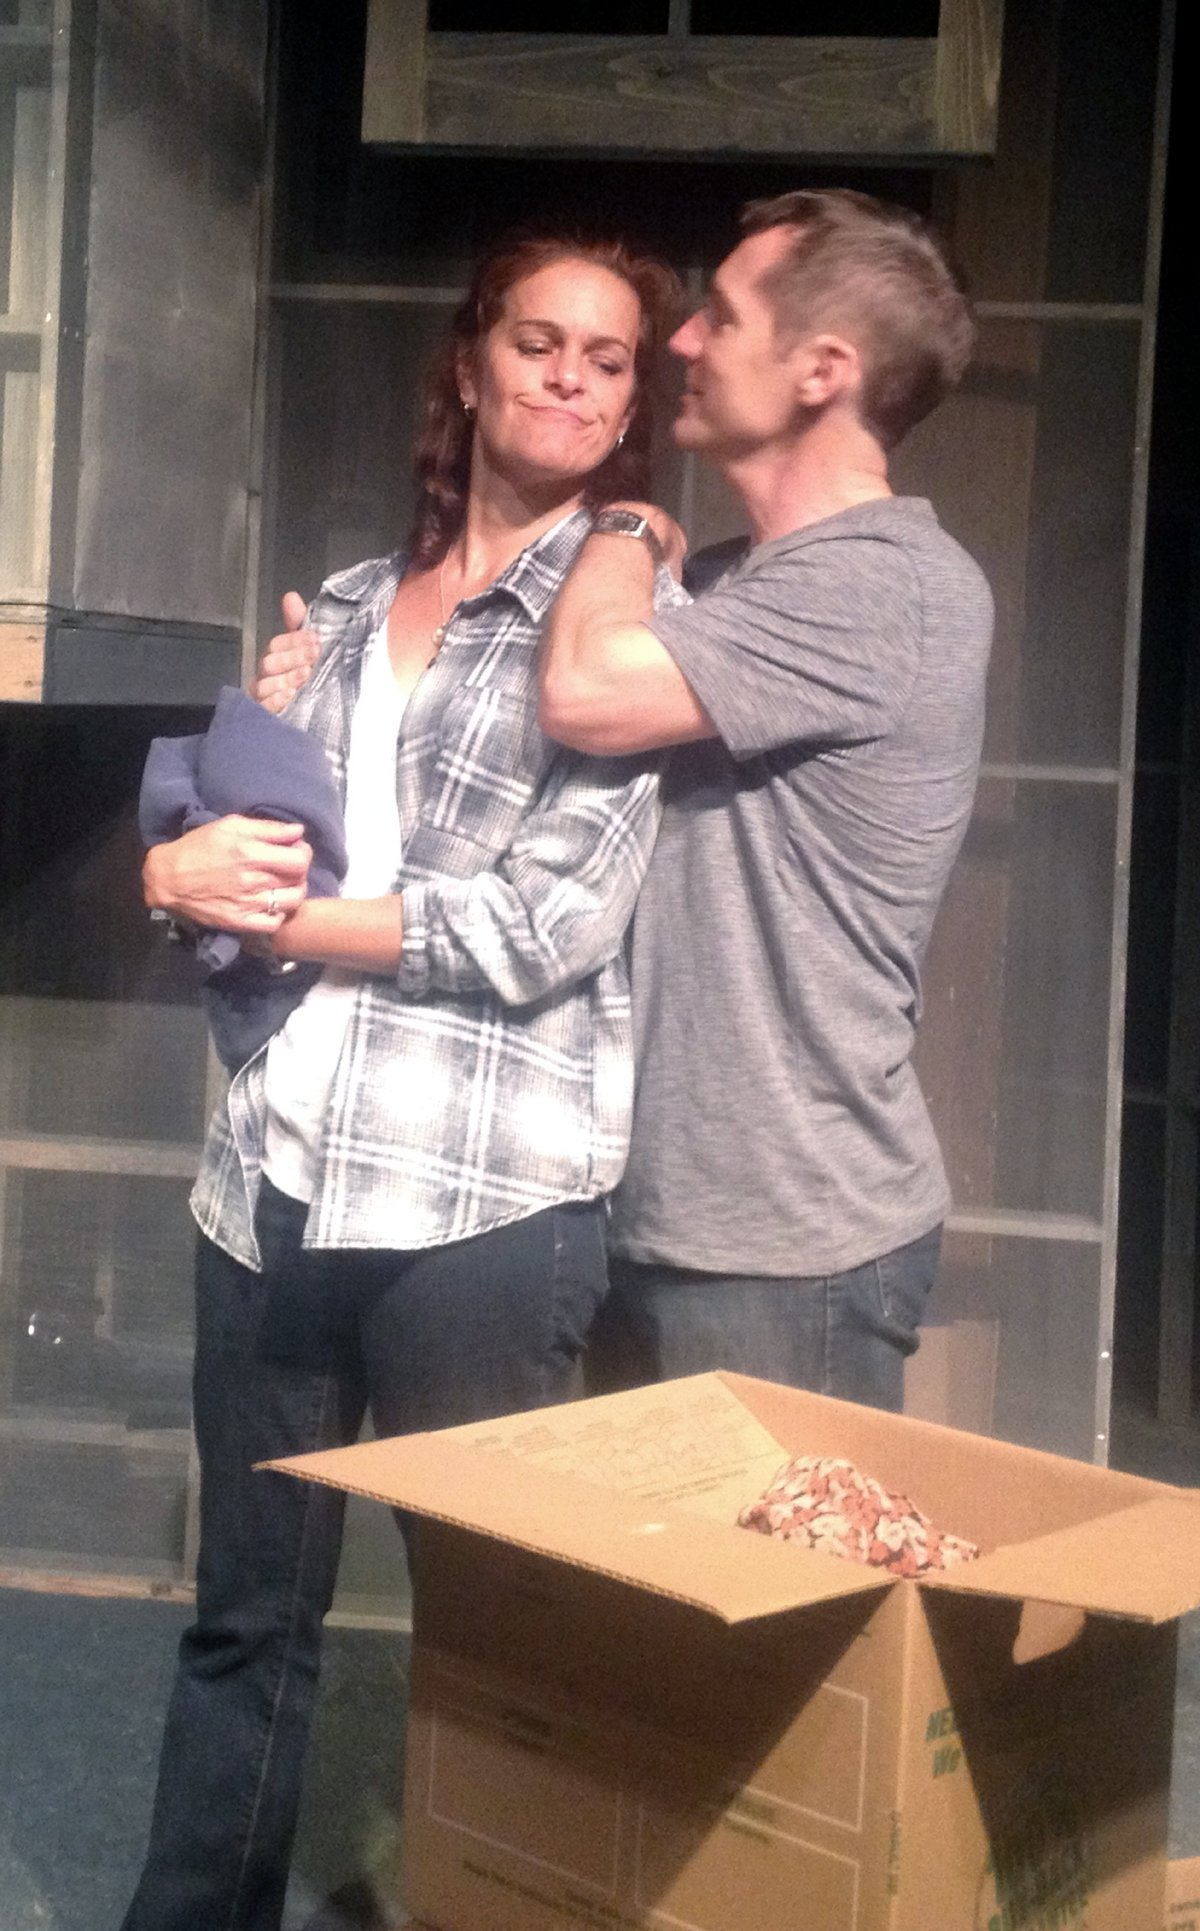 Claire (Kersten Rodau) and Jason (Doug Scholz-Carlson) moving in together in Nautilus Music-Theater's production of Ordinary Days